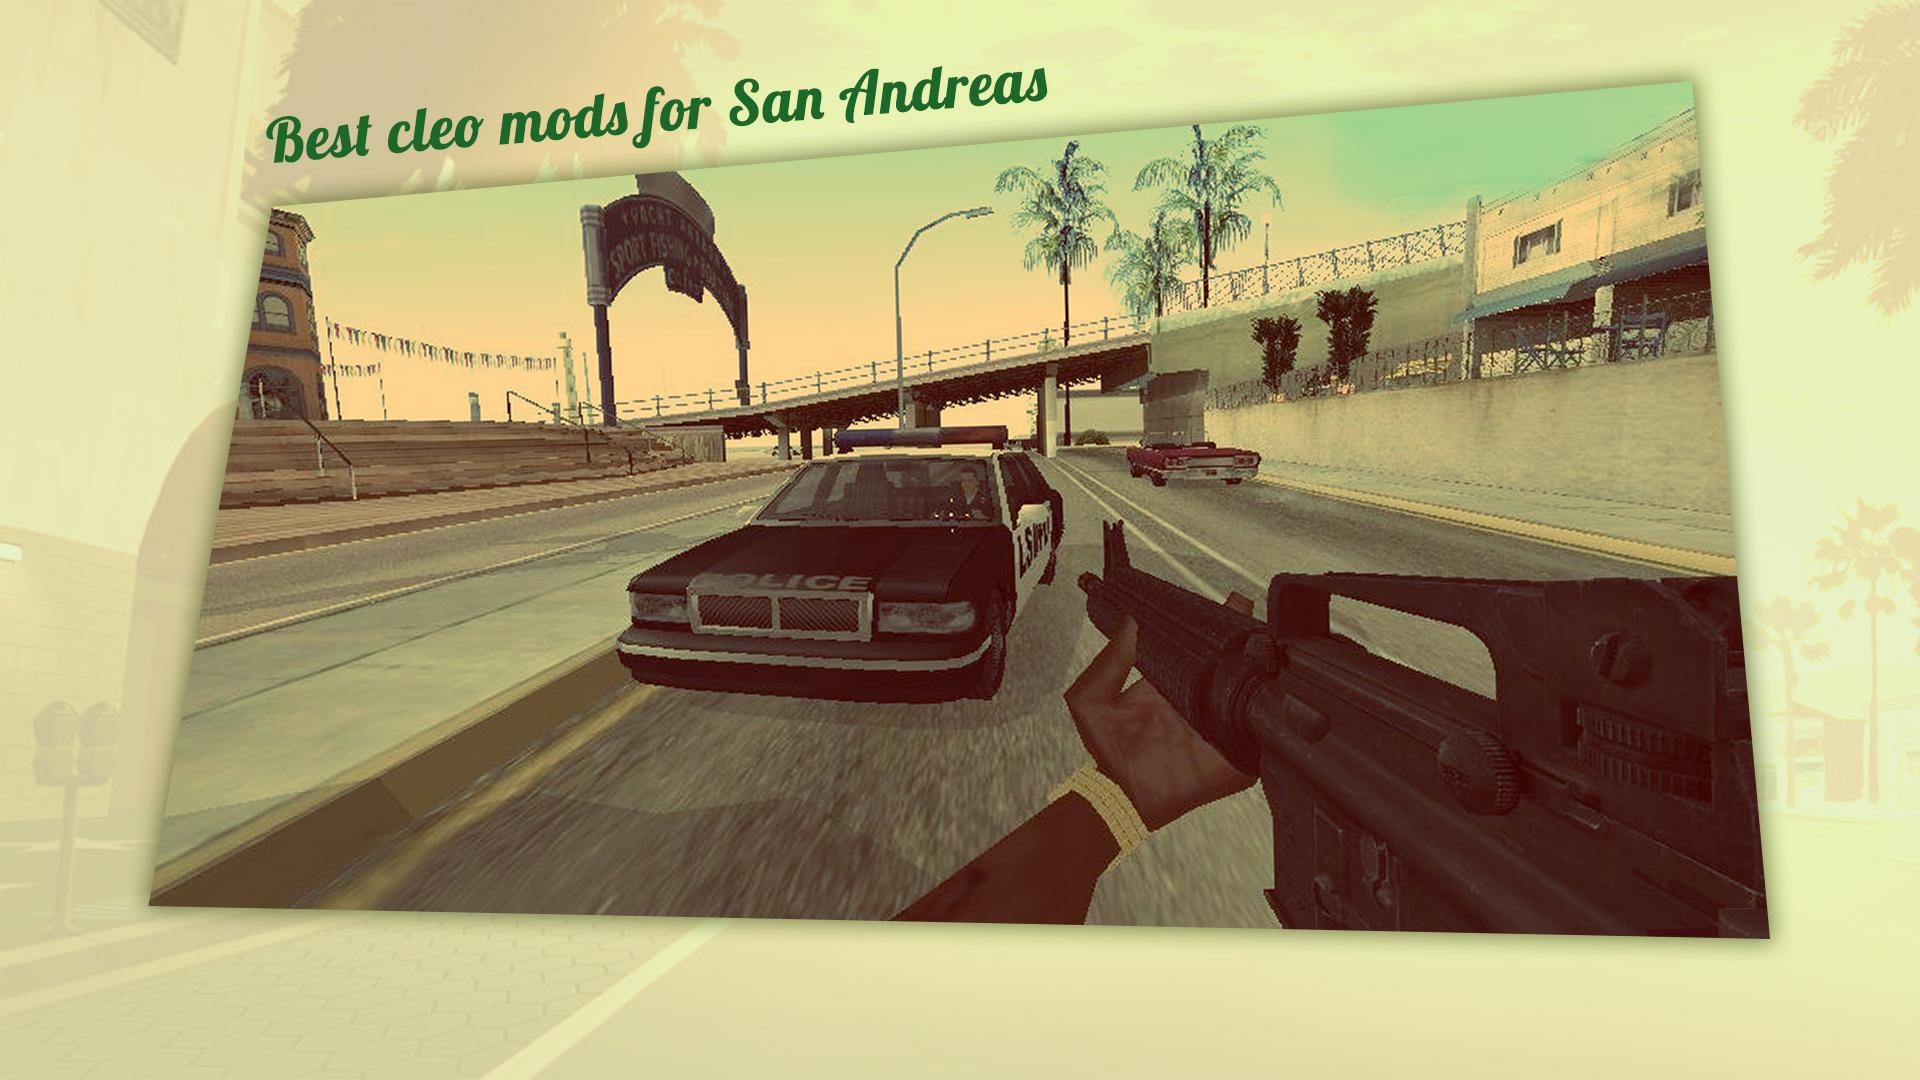 CLEO Mod Collection for GTA SA for Android - APK Download